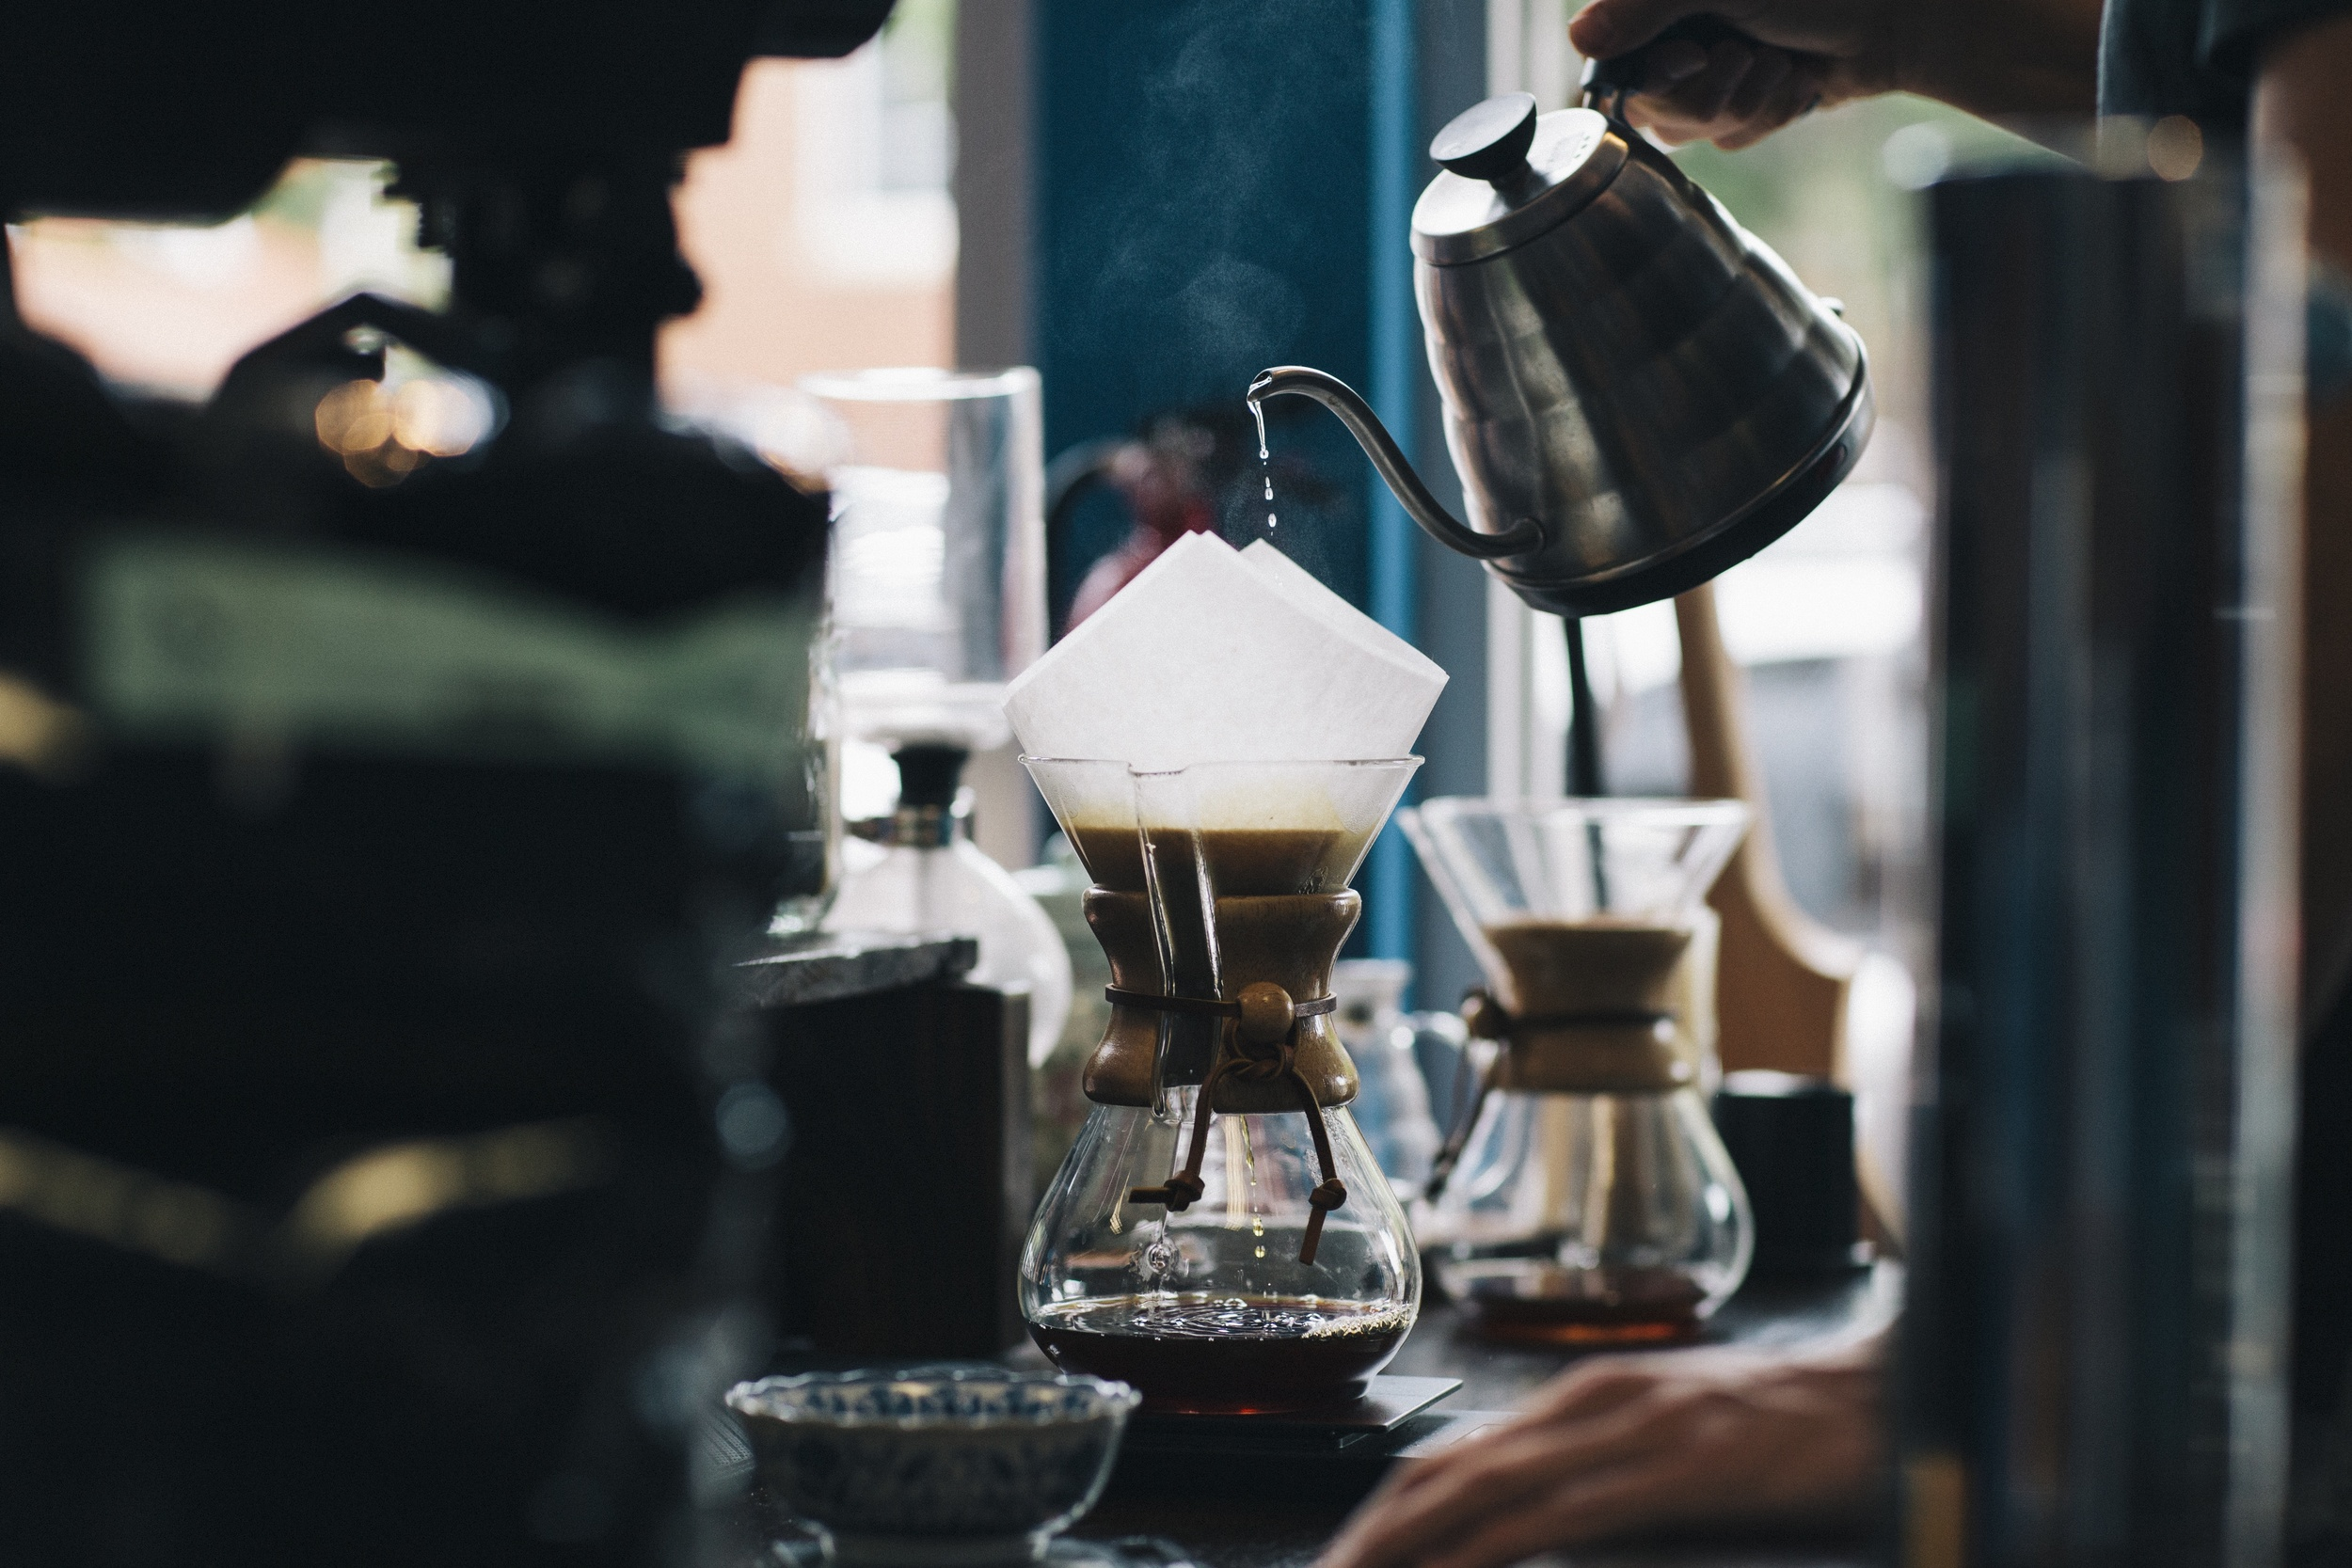 Brewing a nice Chemex, our prefered choice of brewing methods.